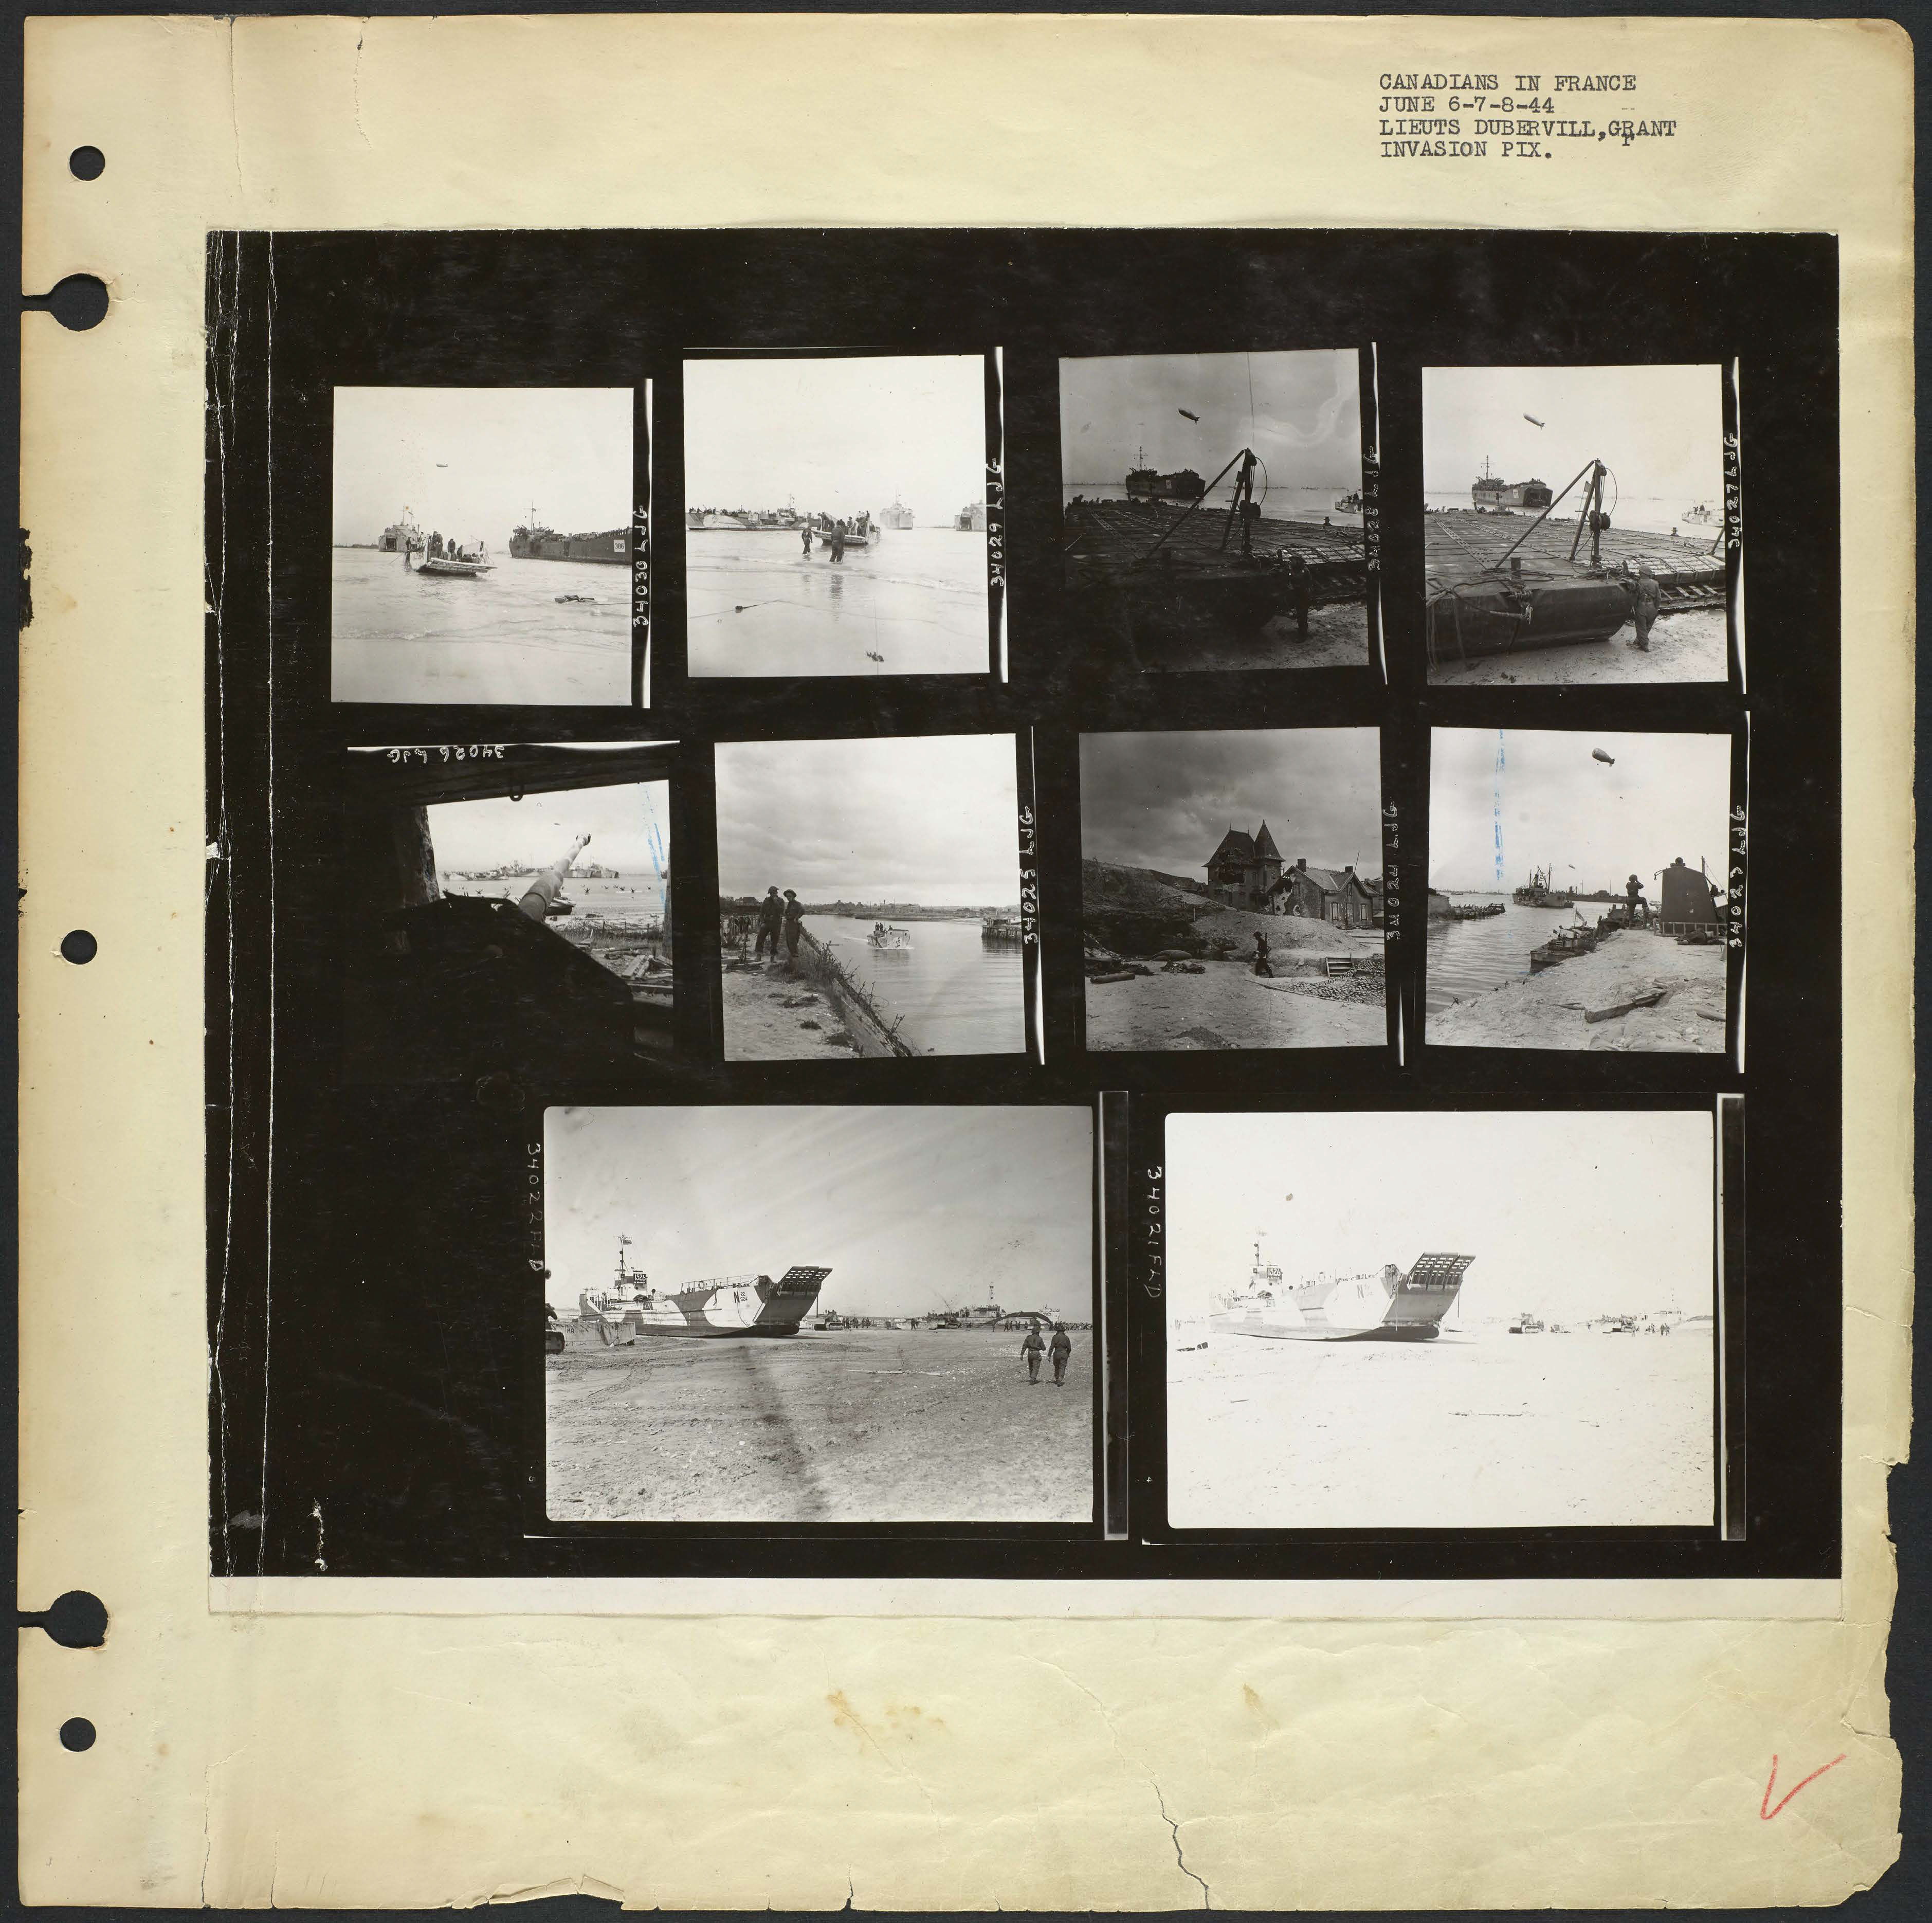 A page of black-and-white photographs showing photos of landing craft, destroyed enemy beach defences, and villages and landing beaches.